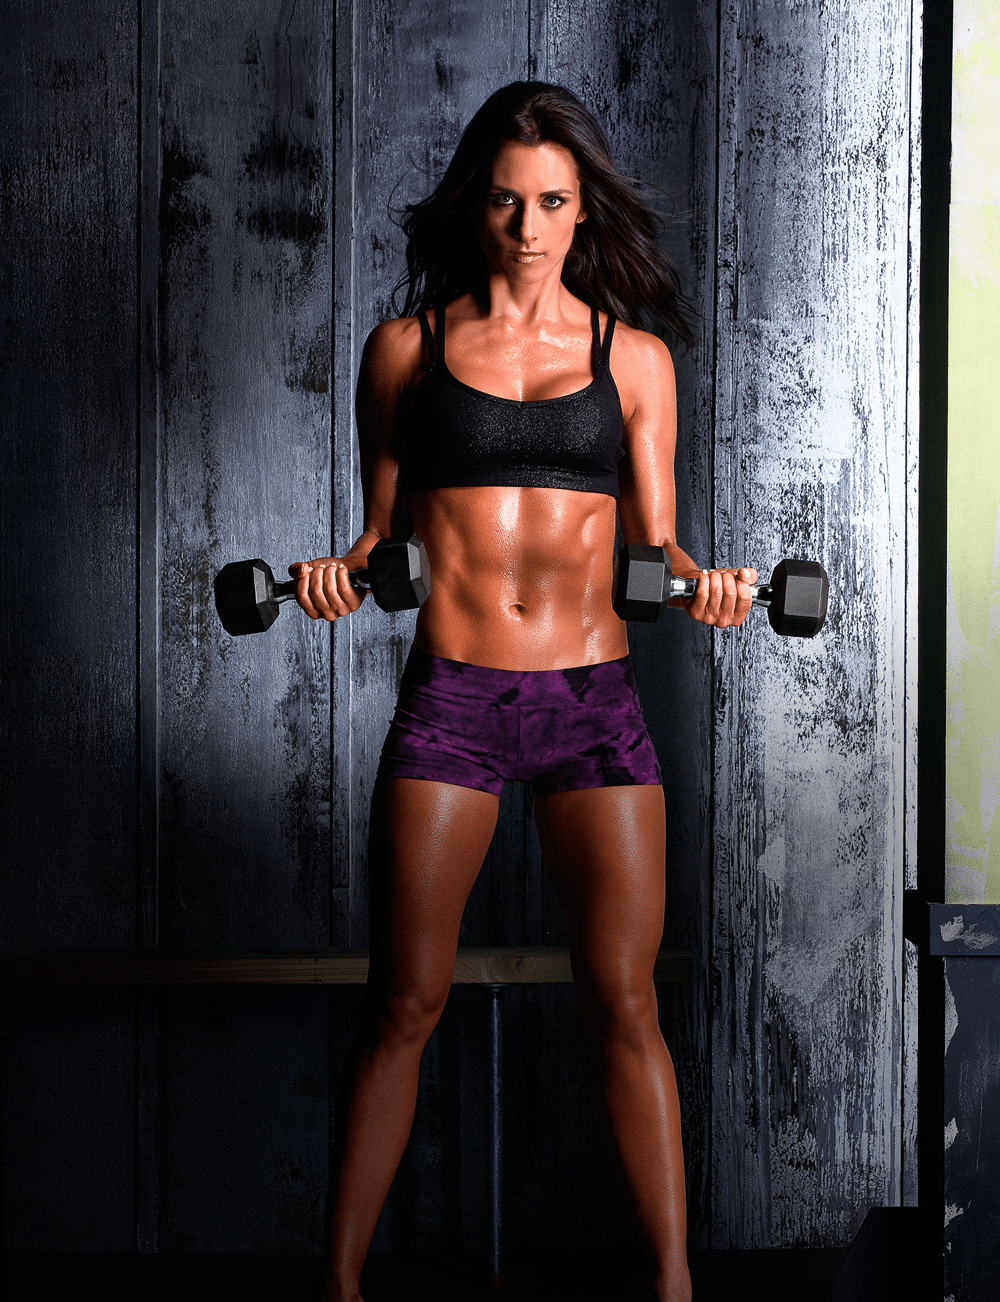 cb09d48cc34ab 8 Fitness Tips From BeachBody s Autumn Calabrese - The Celebration ...